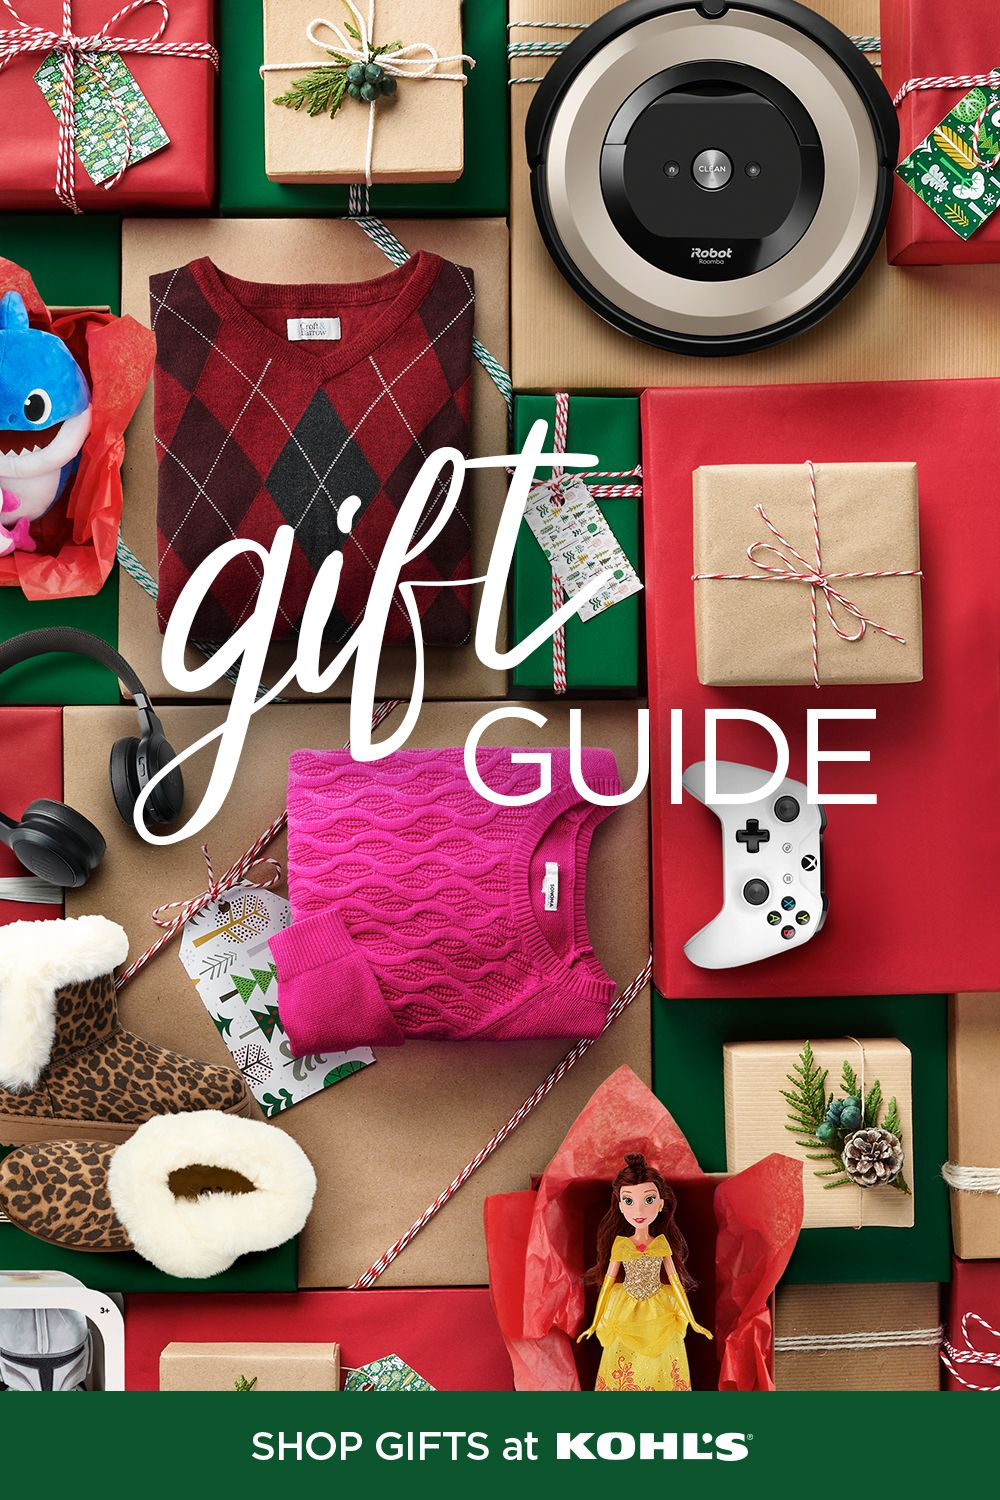 Find Top Holiday Gifts At Kohl S In 2020 Top Holiday Gifts Christmas Crafts Diy Christmas Gift Shop